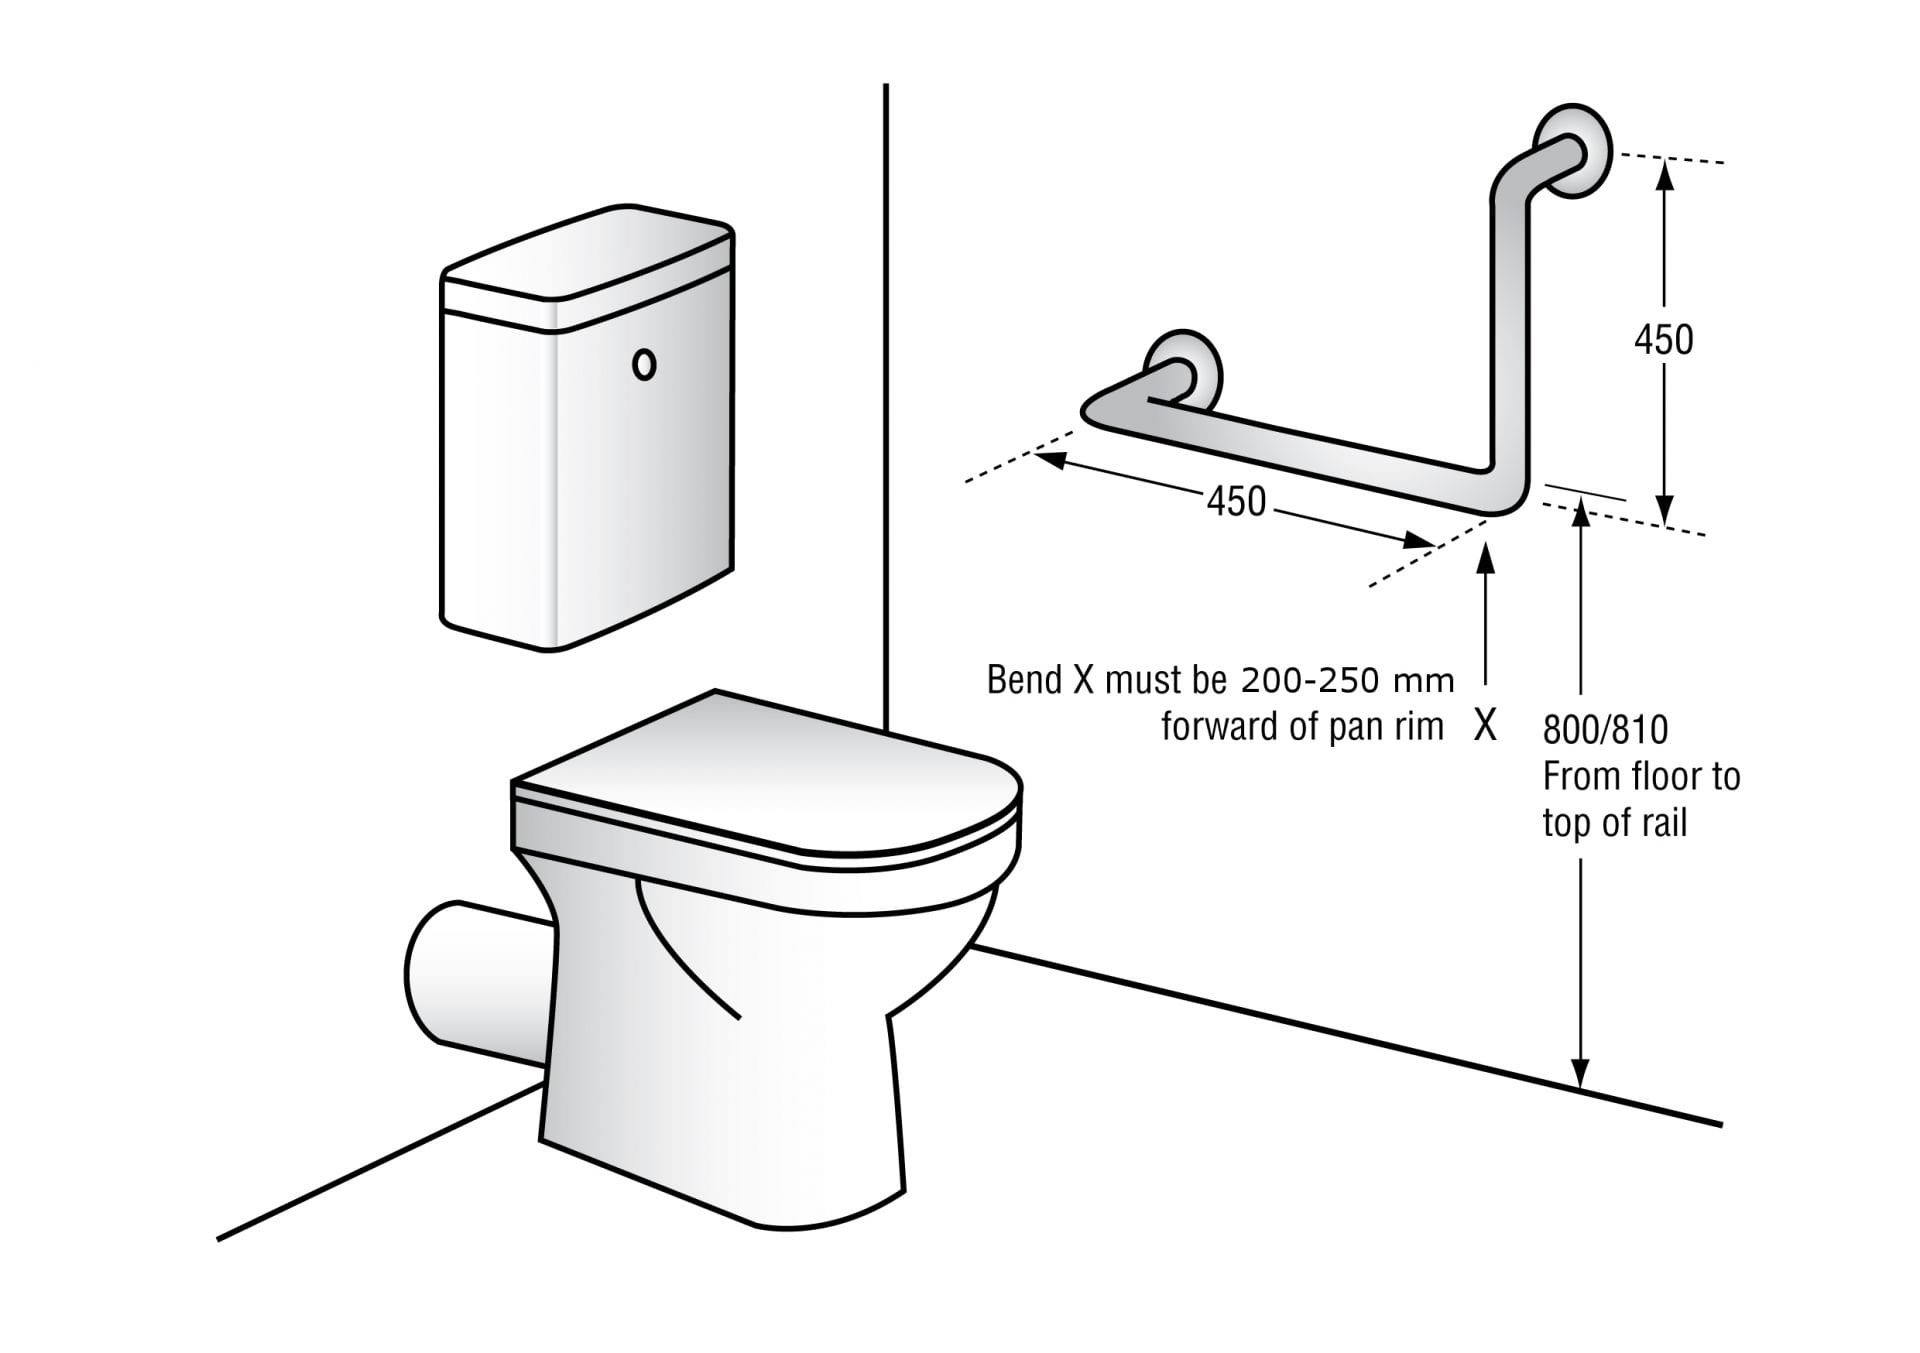 Ambulant 450x450mm Wc Grab Rail Concealed Fix Sss